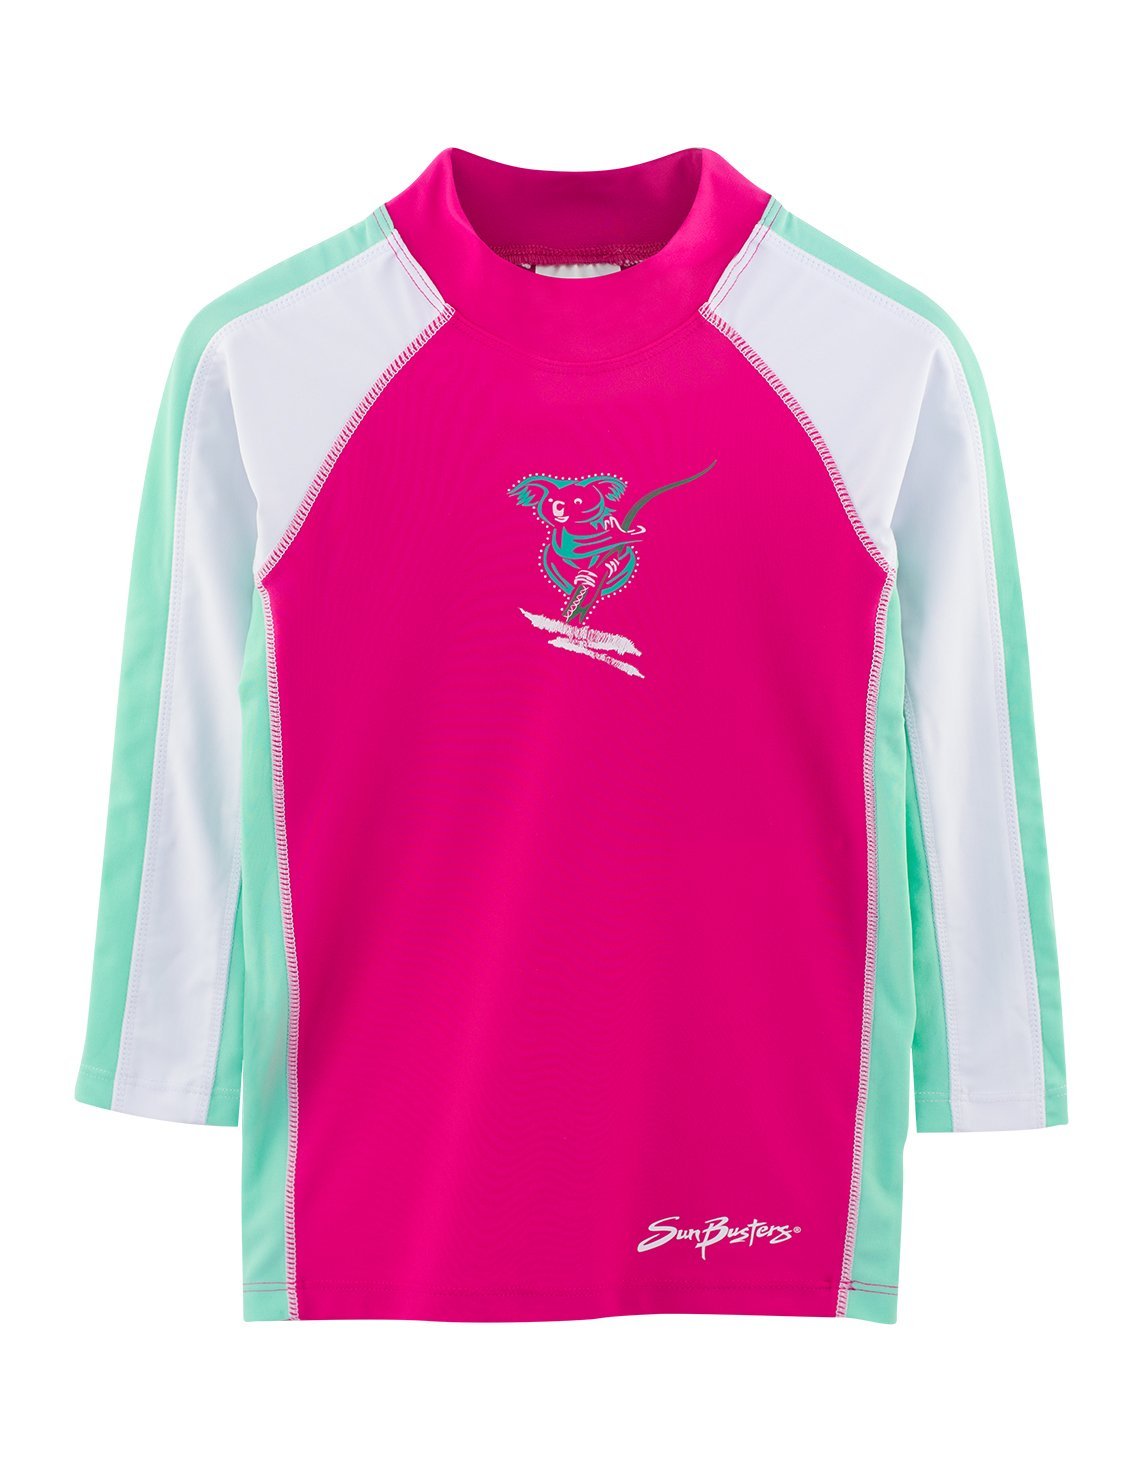 SunBusters Girls Long Sleeve Rash Guard 12 mos - 12 yrs, UPF 50+ Sun Protection Plangea